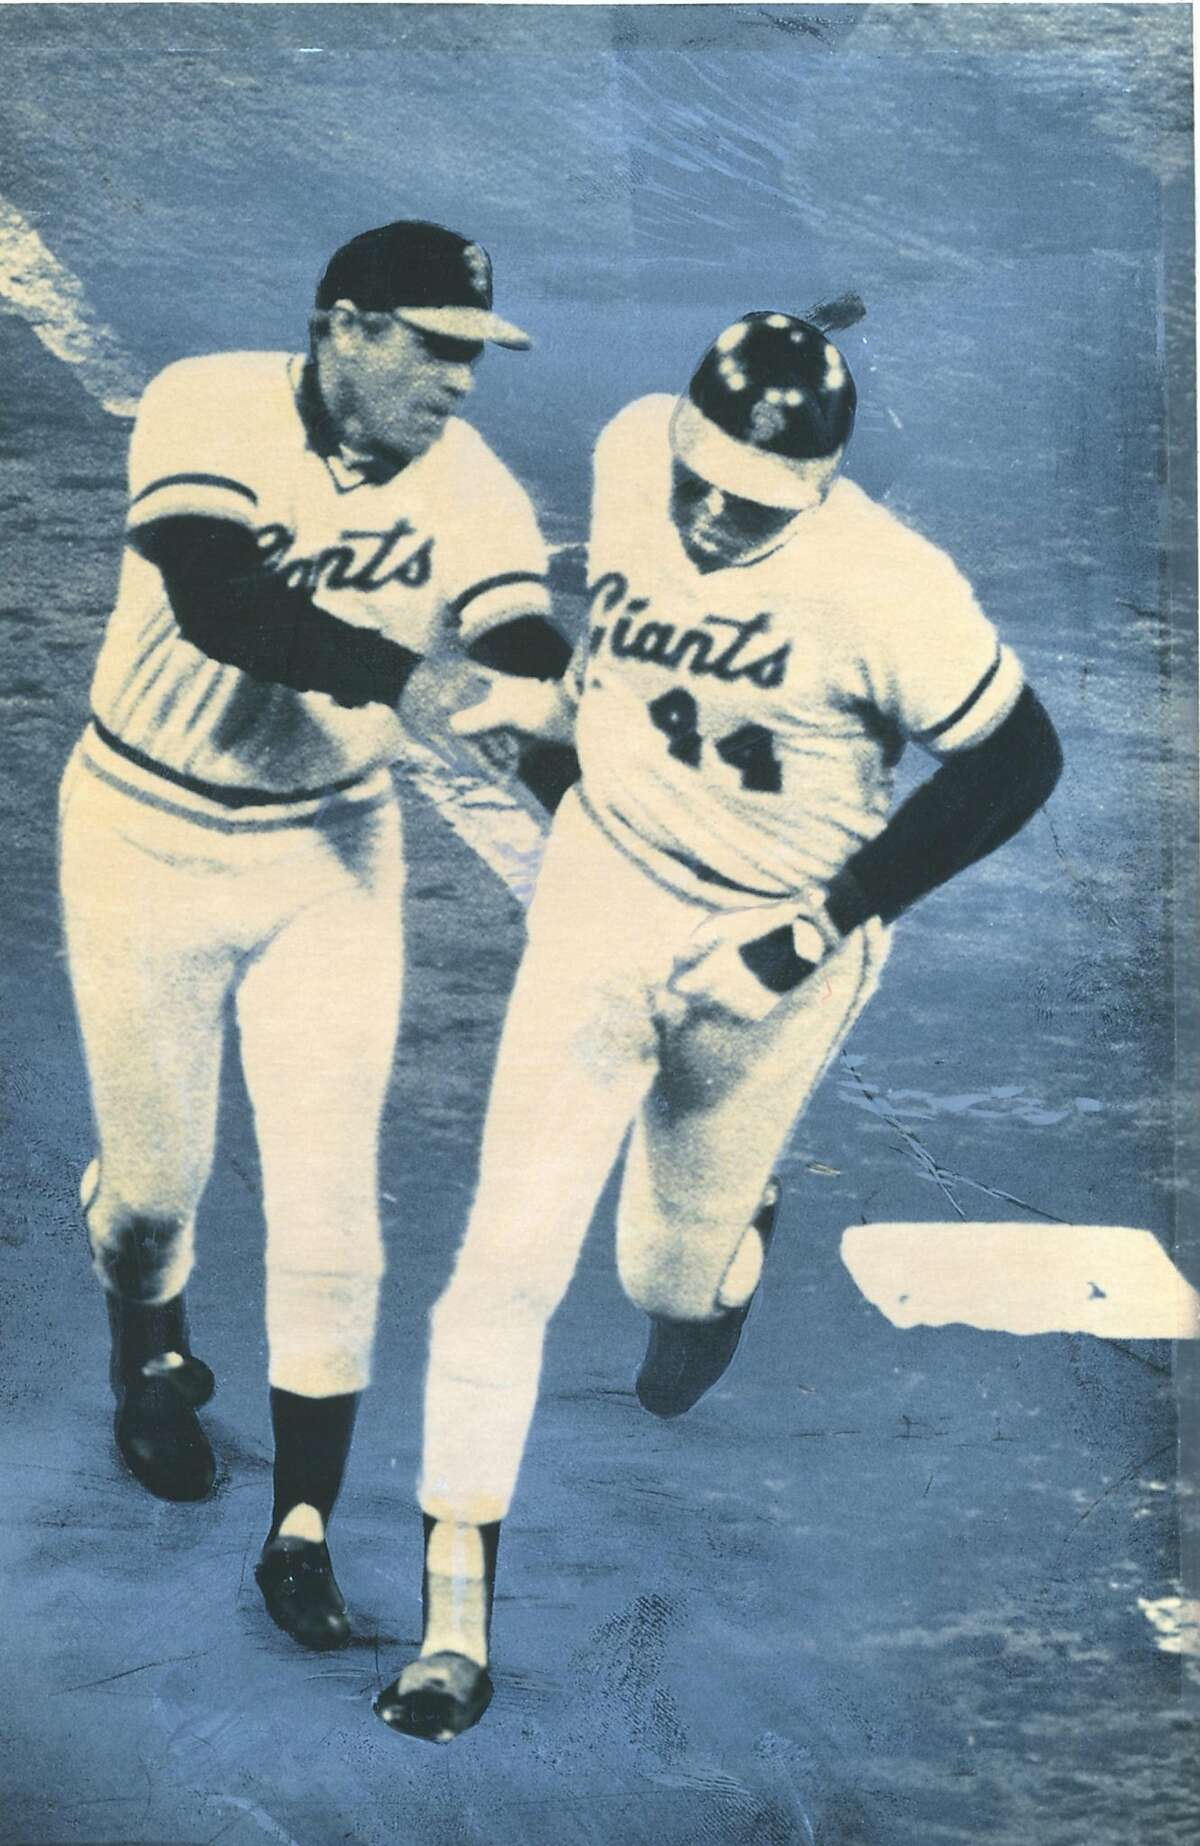 McCovey08_3.jpg Willie McCovey hits his 513th career home run on June 16, 1979, passing Ernie Banks and Eddie Mathews on all-time list. Coach Dave Bristol also pictured. AP Chronicle File